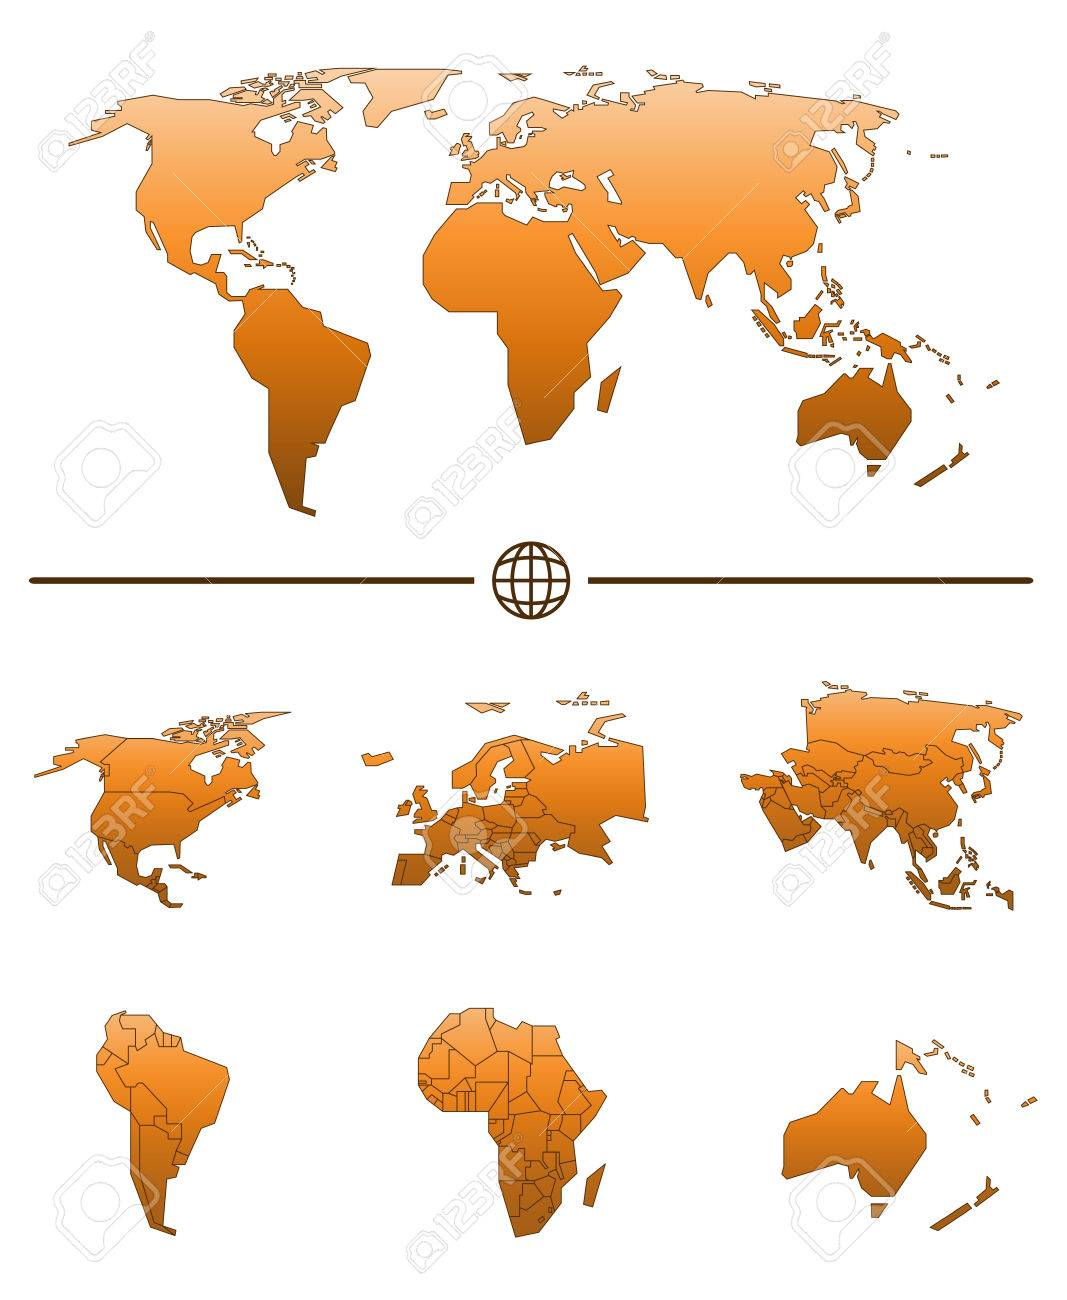 World map shape and separated continents with states tuned in vector world map shape and separated continents with states tuned in orange color gumiabroncs Image collections